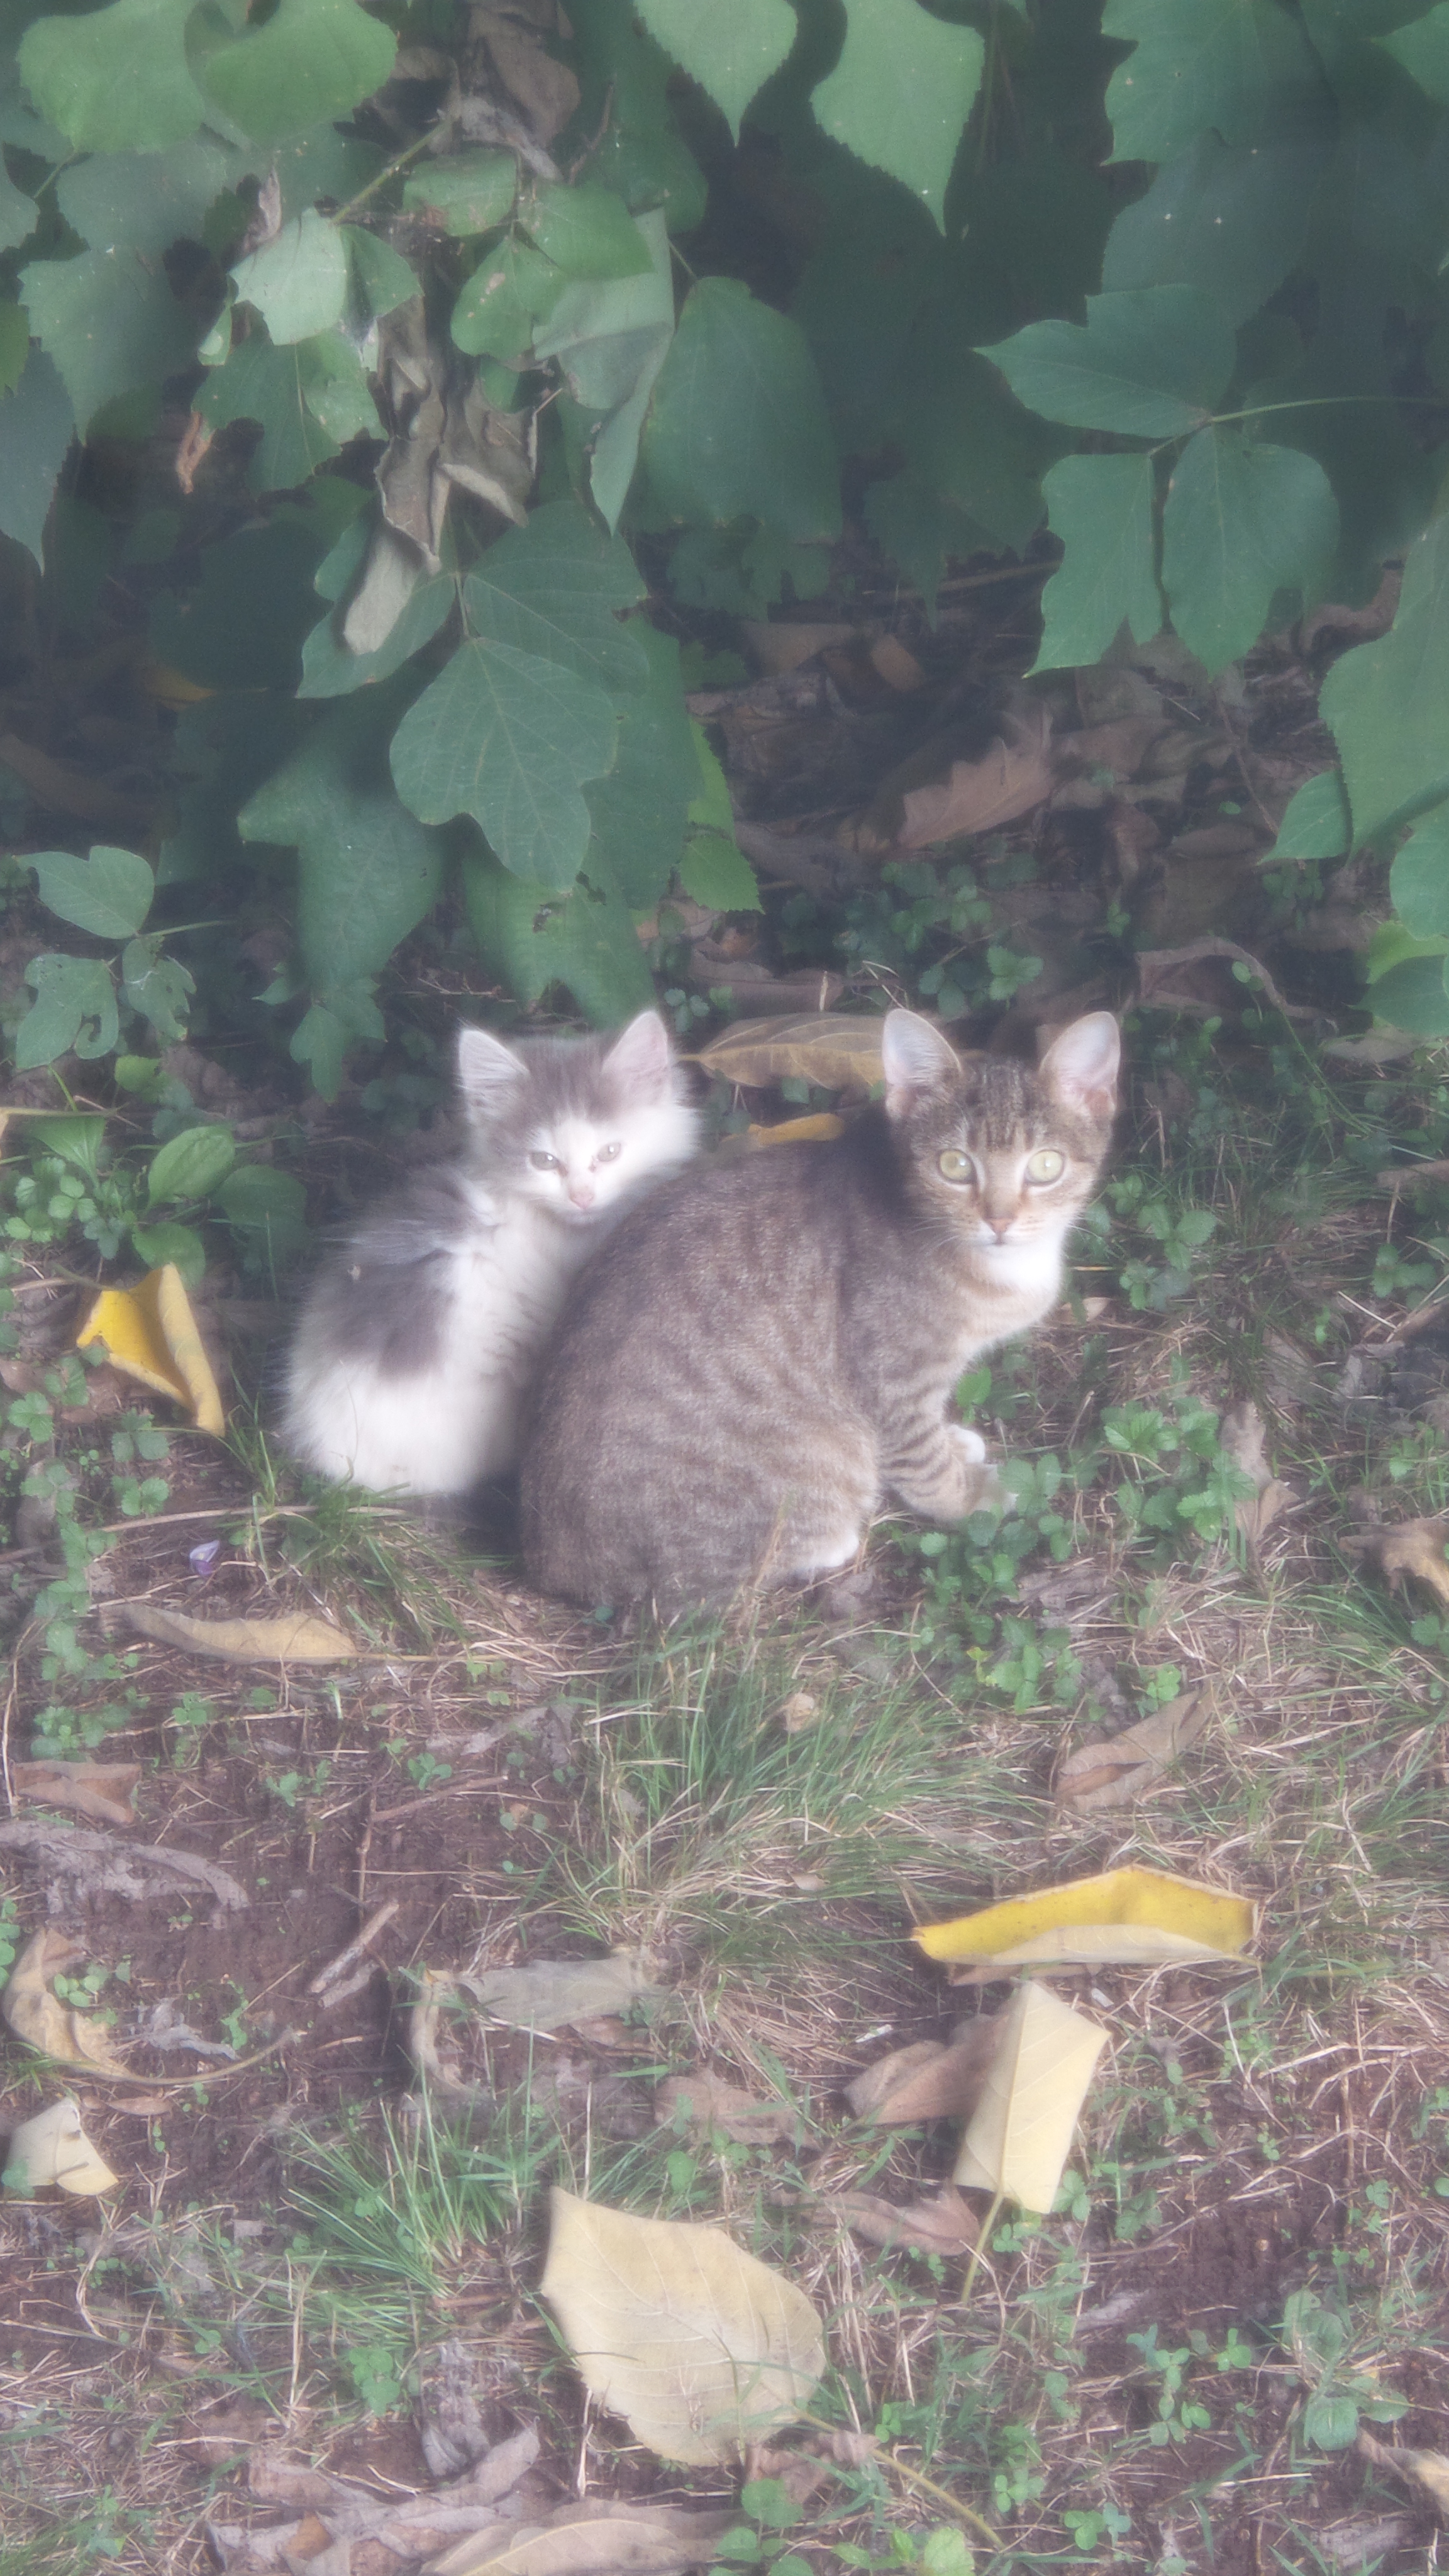 Backyard kitties